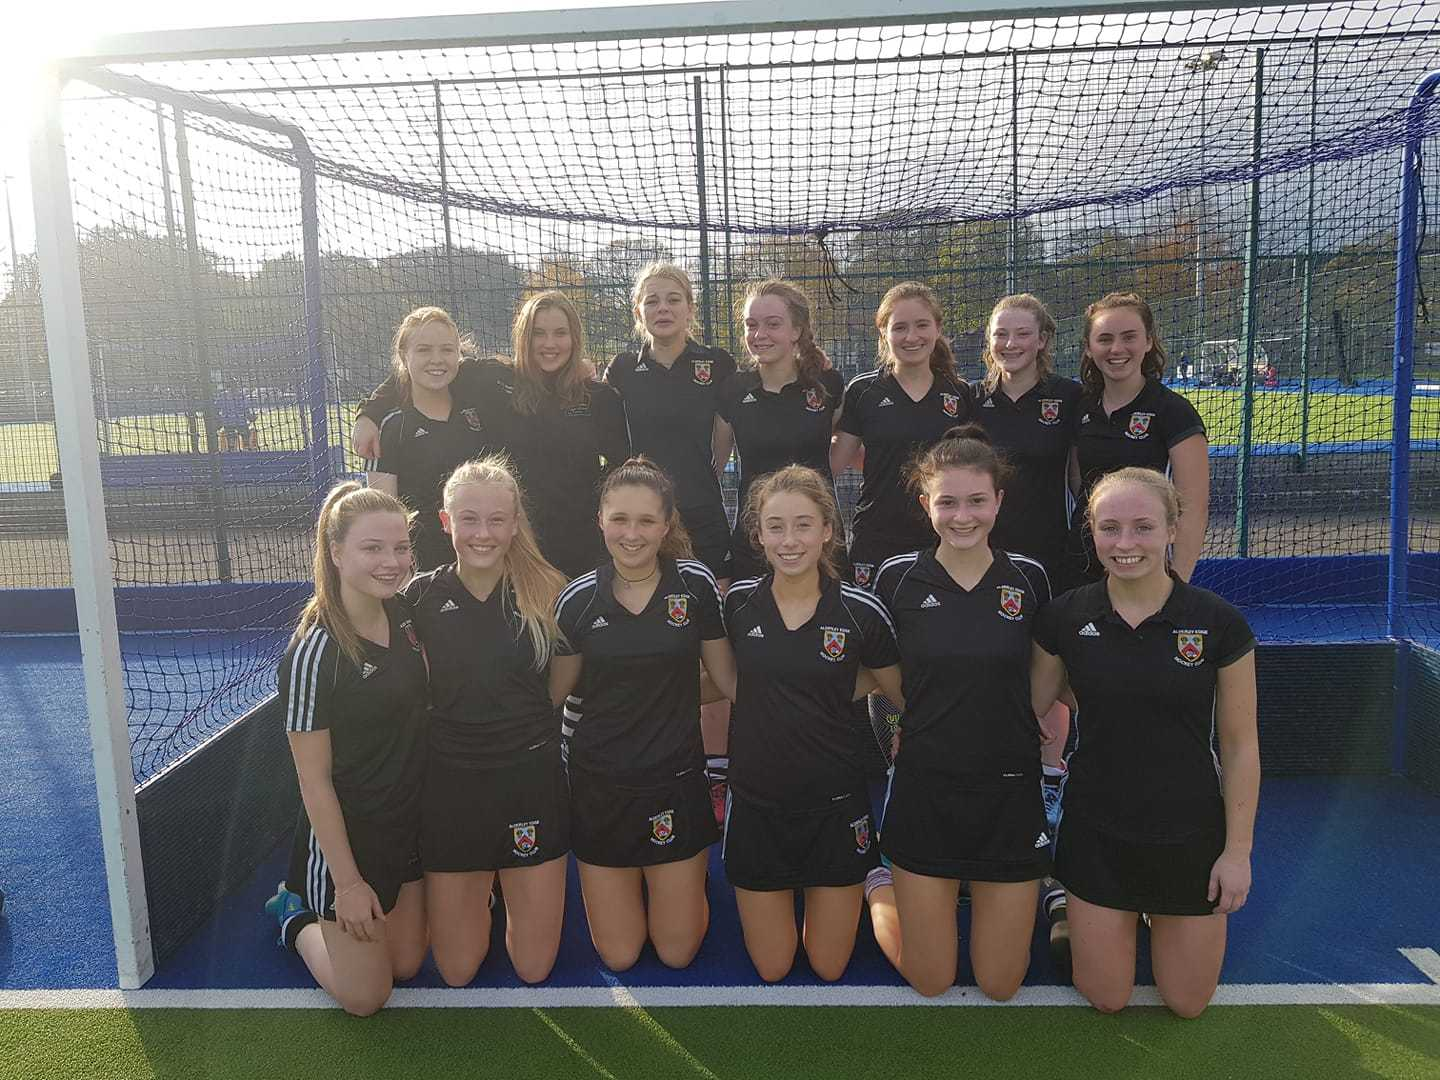 Alderley Edge Hockey Club under 18s girls' team